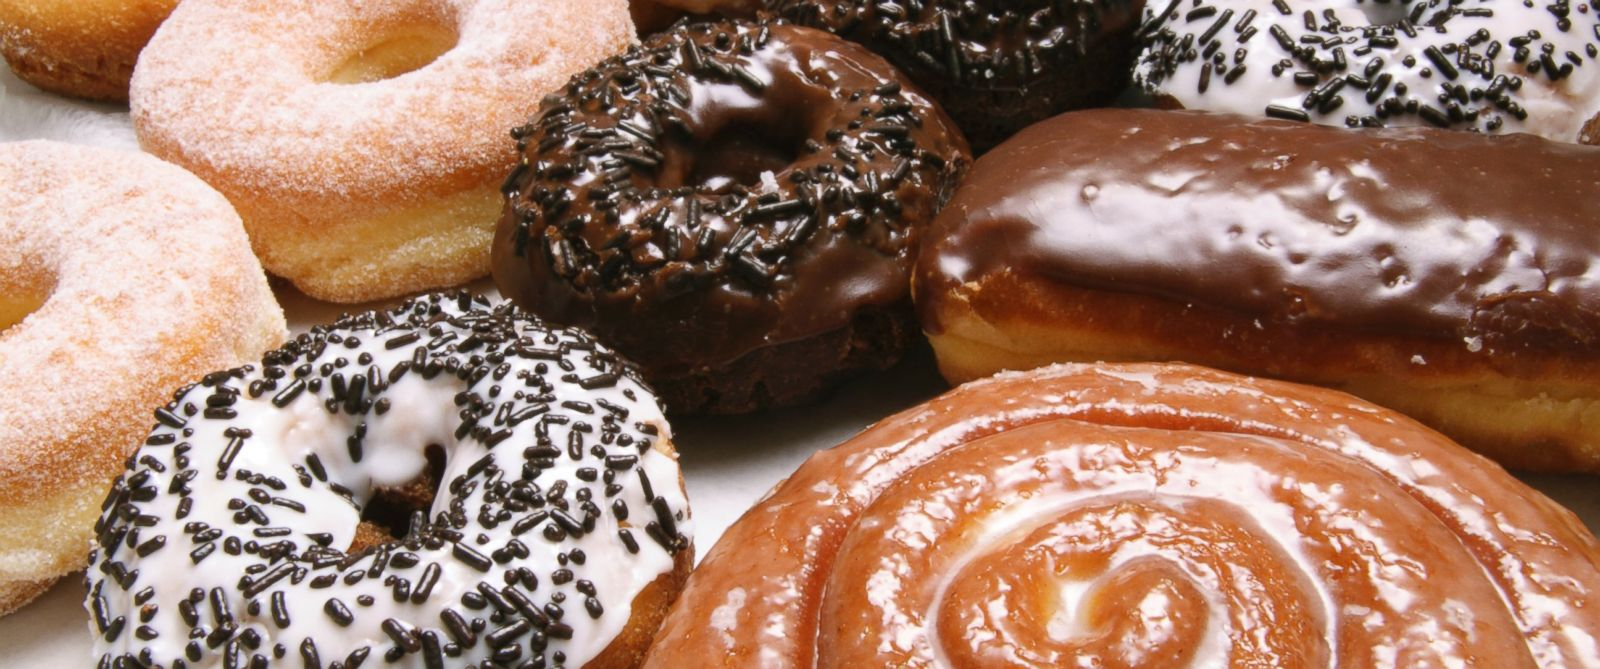 PHOTO: A variety of doughnuts is shown.